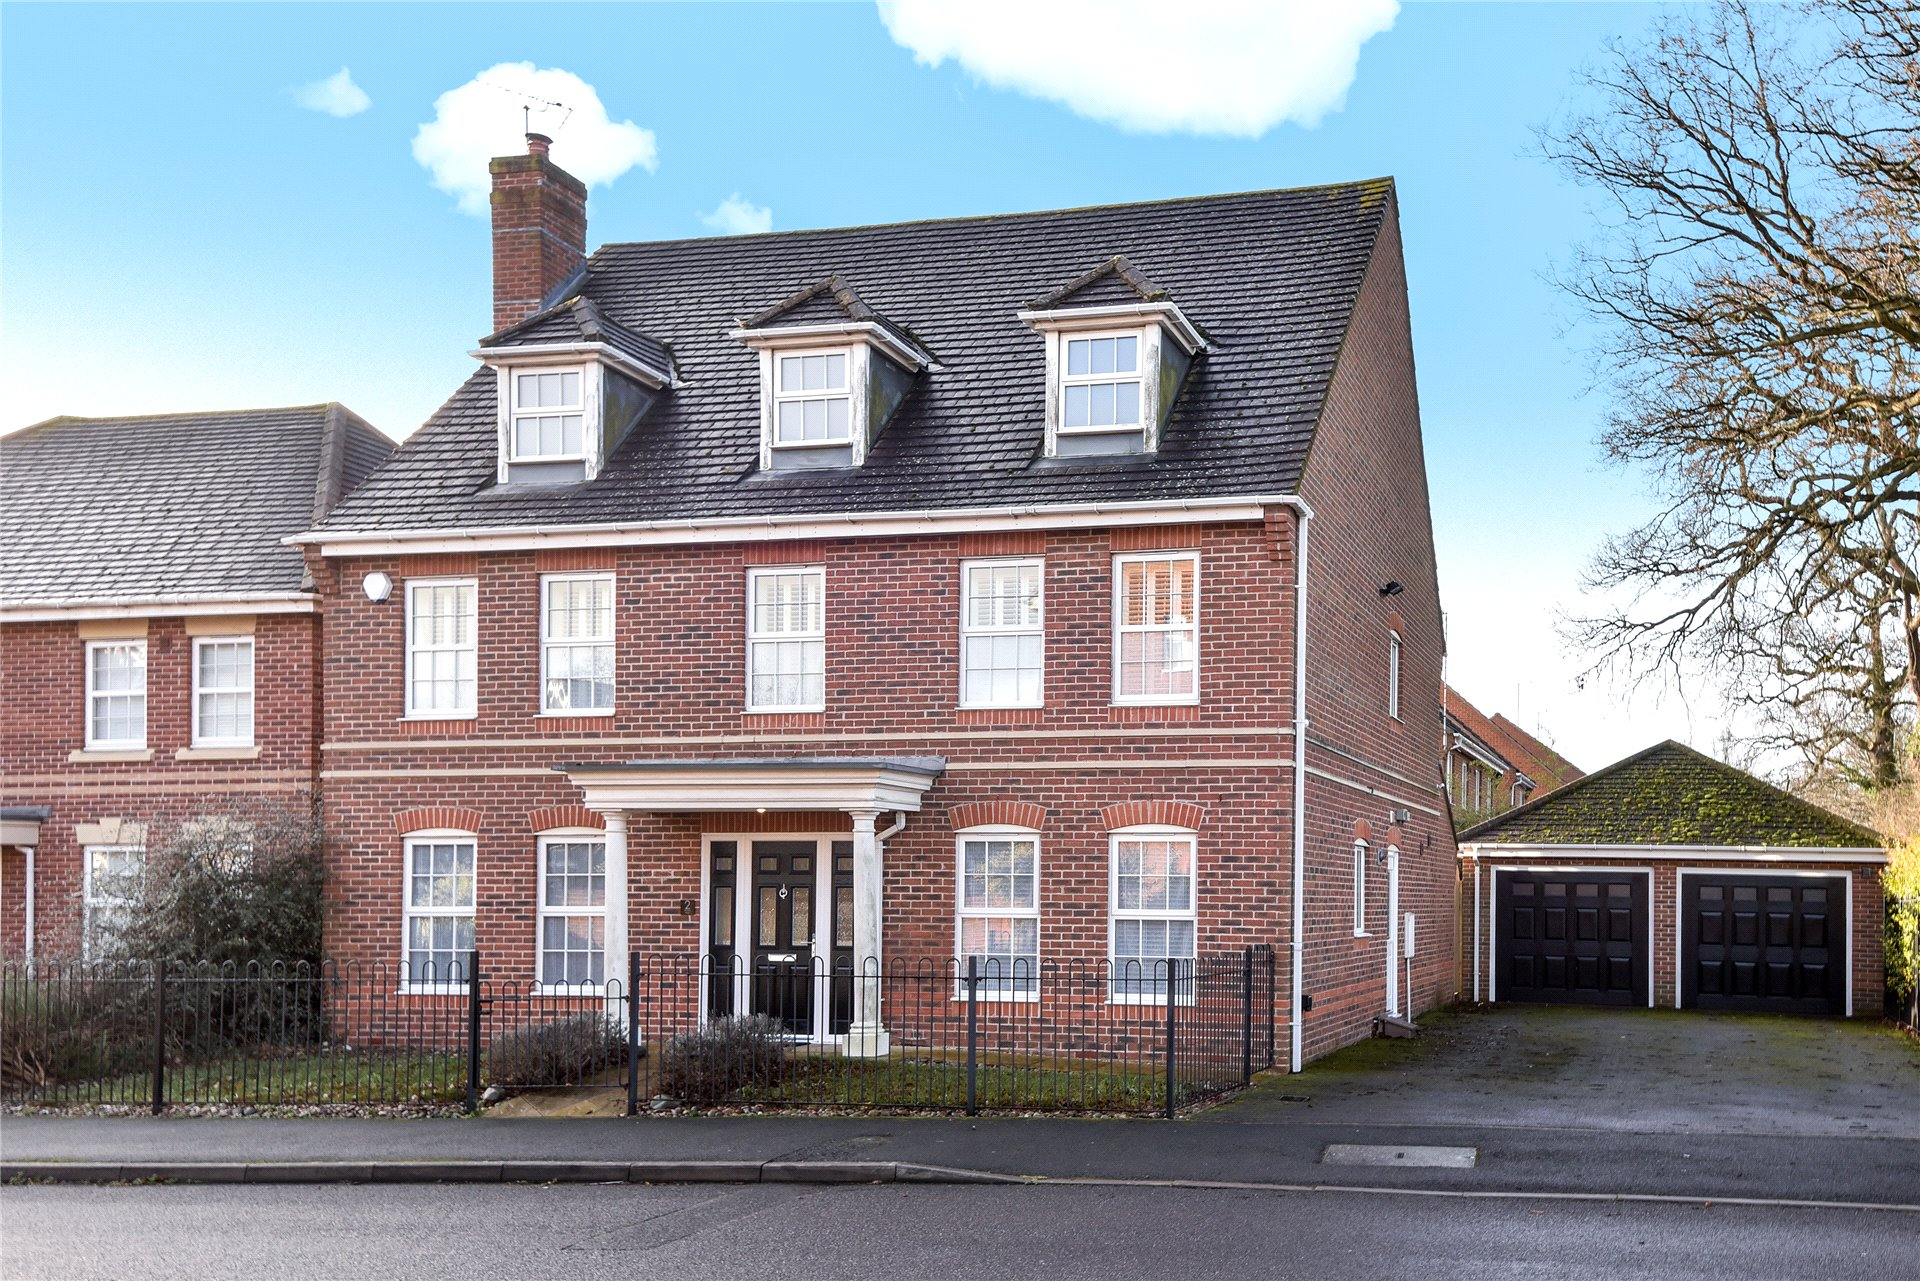 4 Bedrooms Detached House for rent in Arbery Way, Arborfield, Reading, Berkshire, RG2